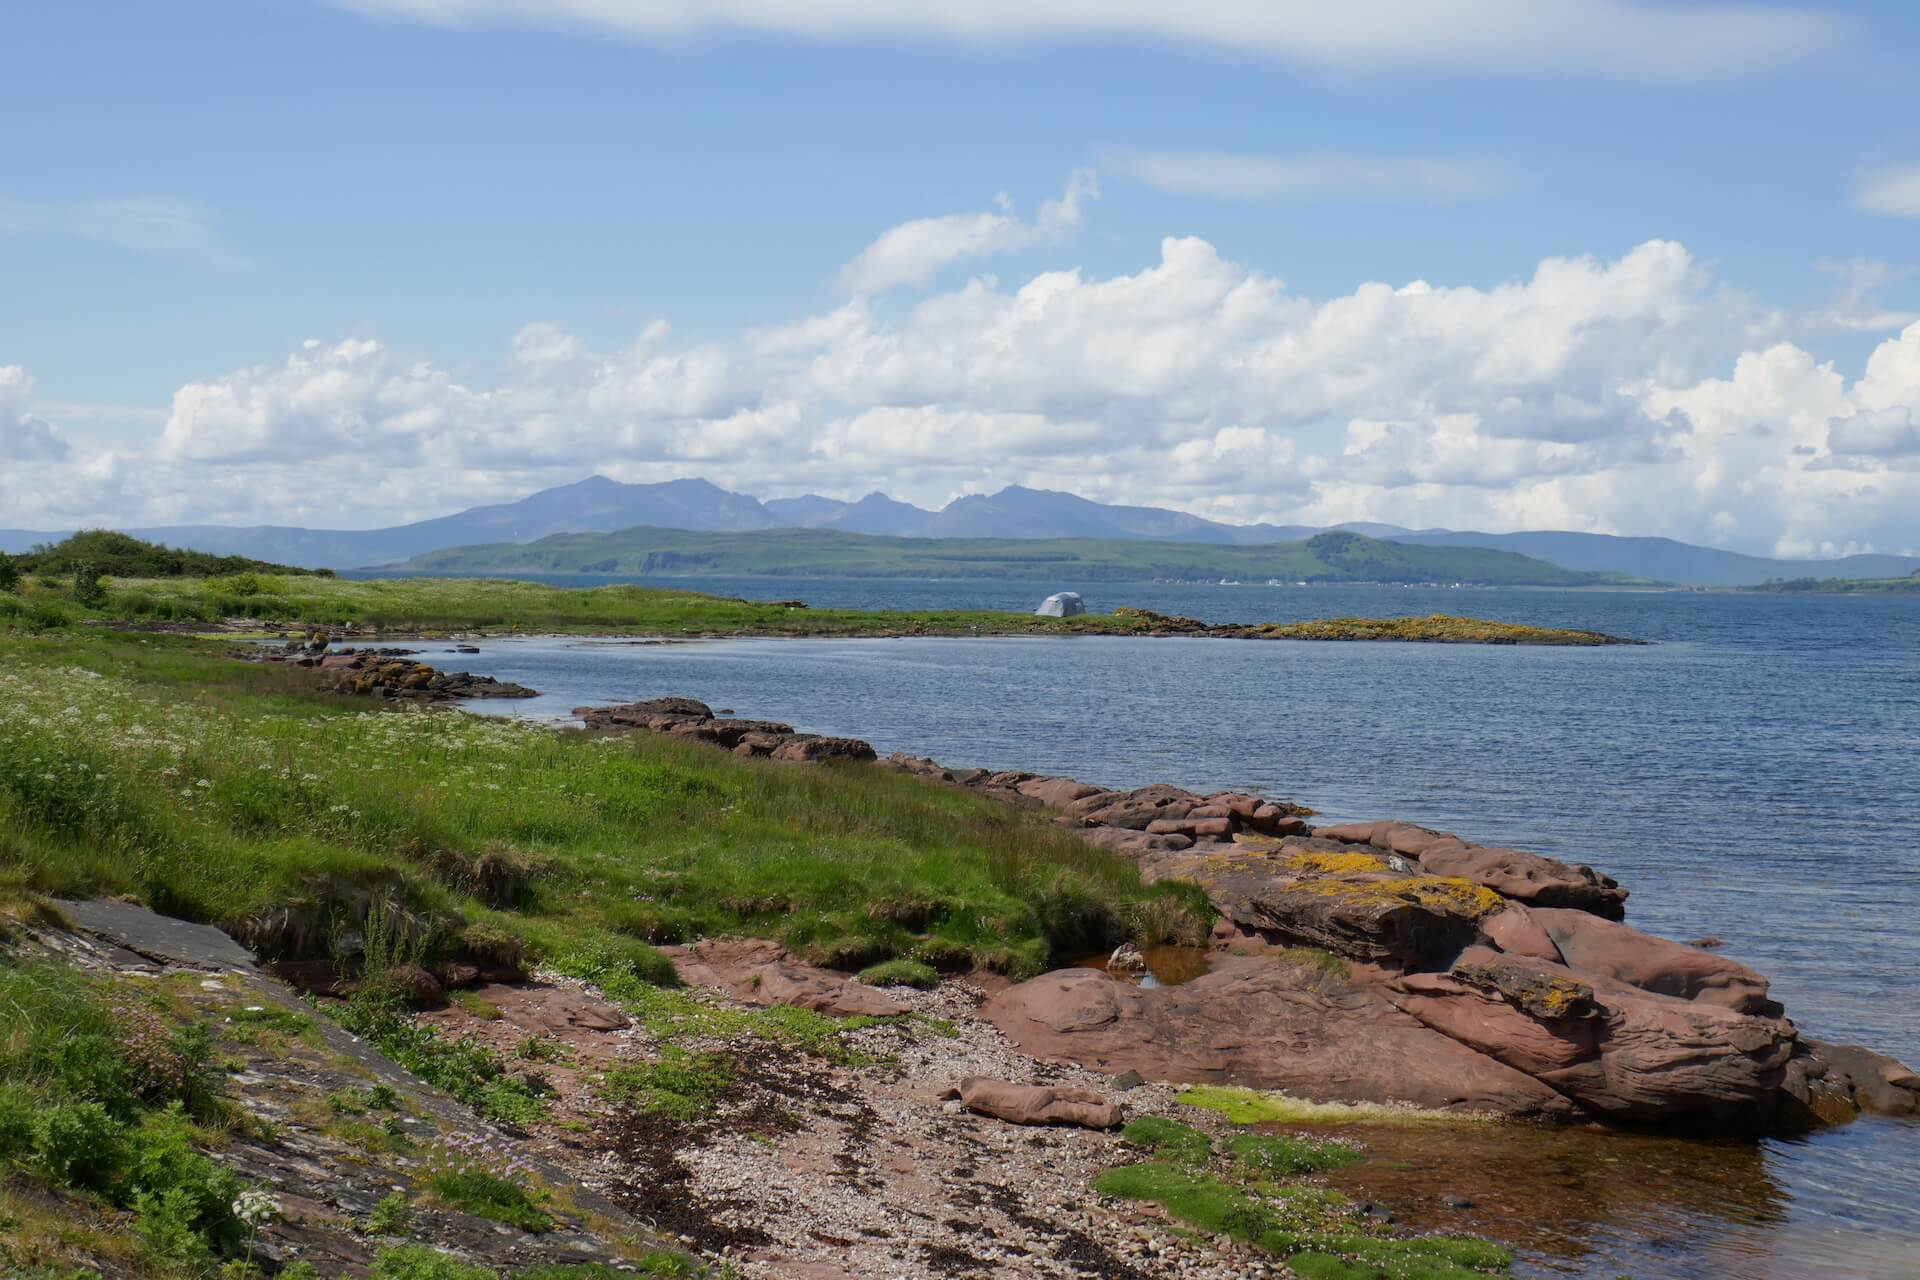 Sandstone coast of Isle of Cumbrae with Isle of Arran in the distance